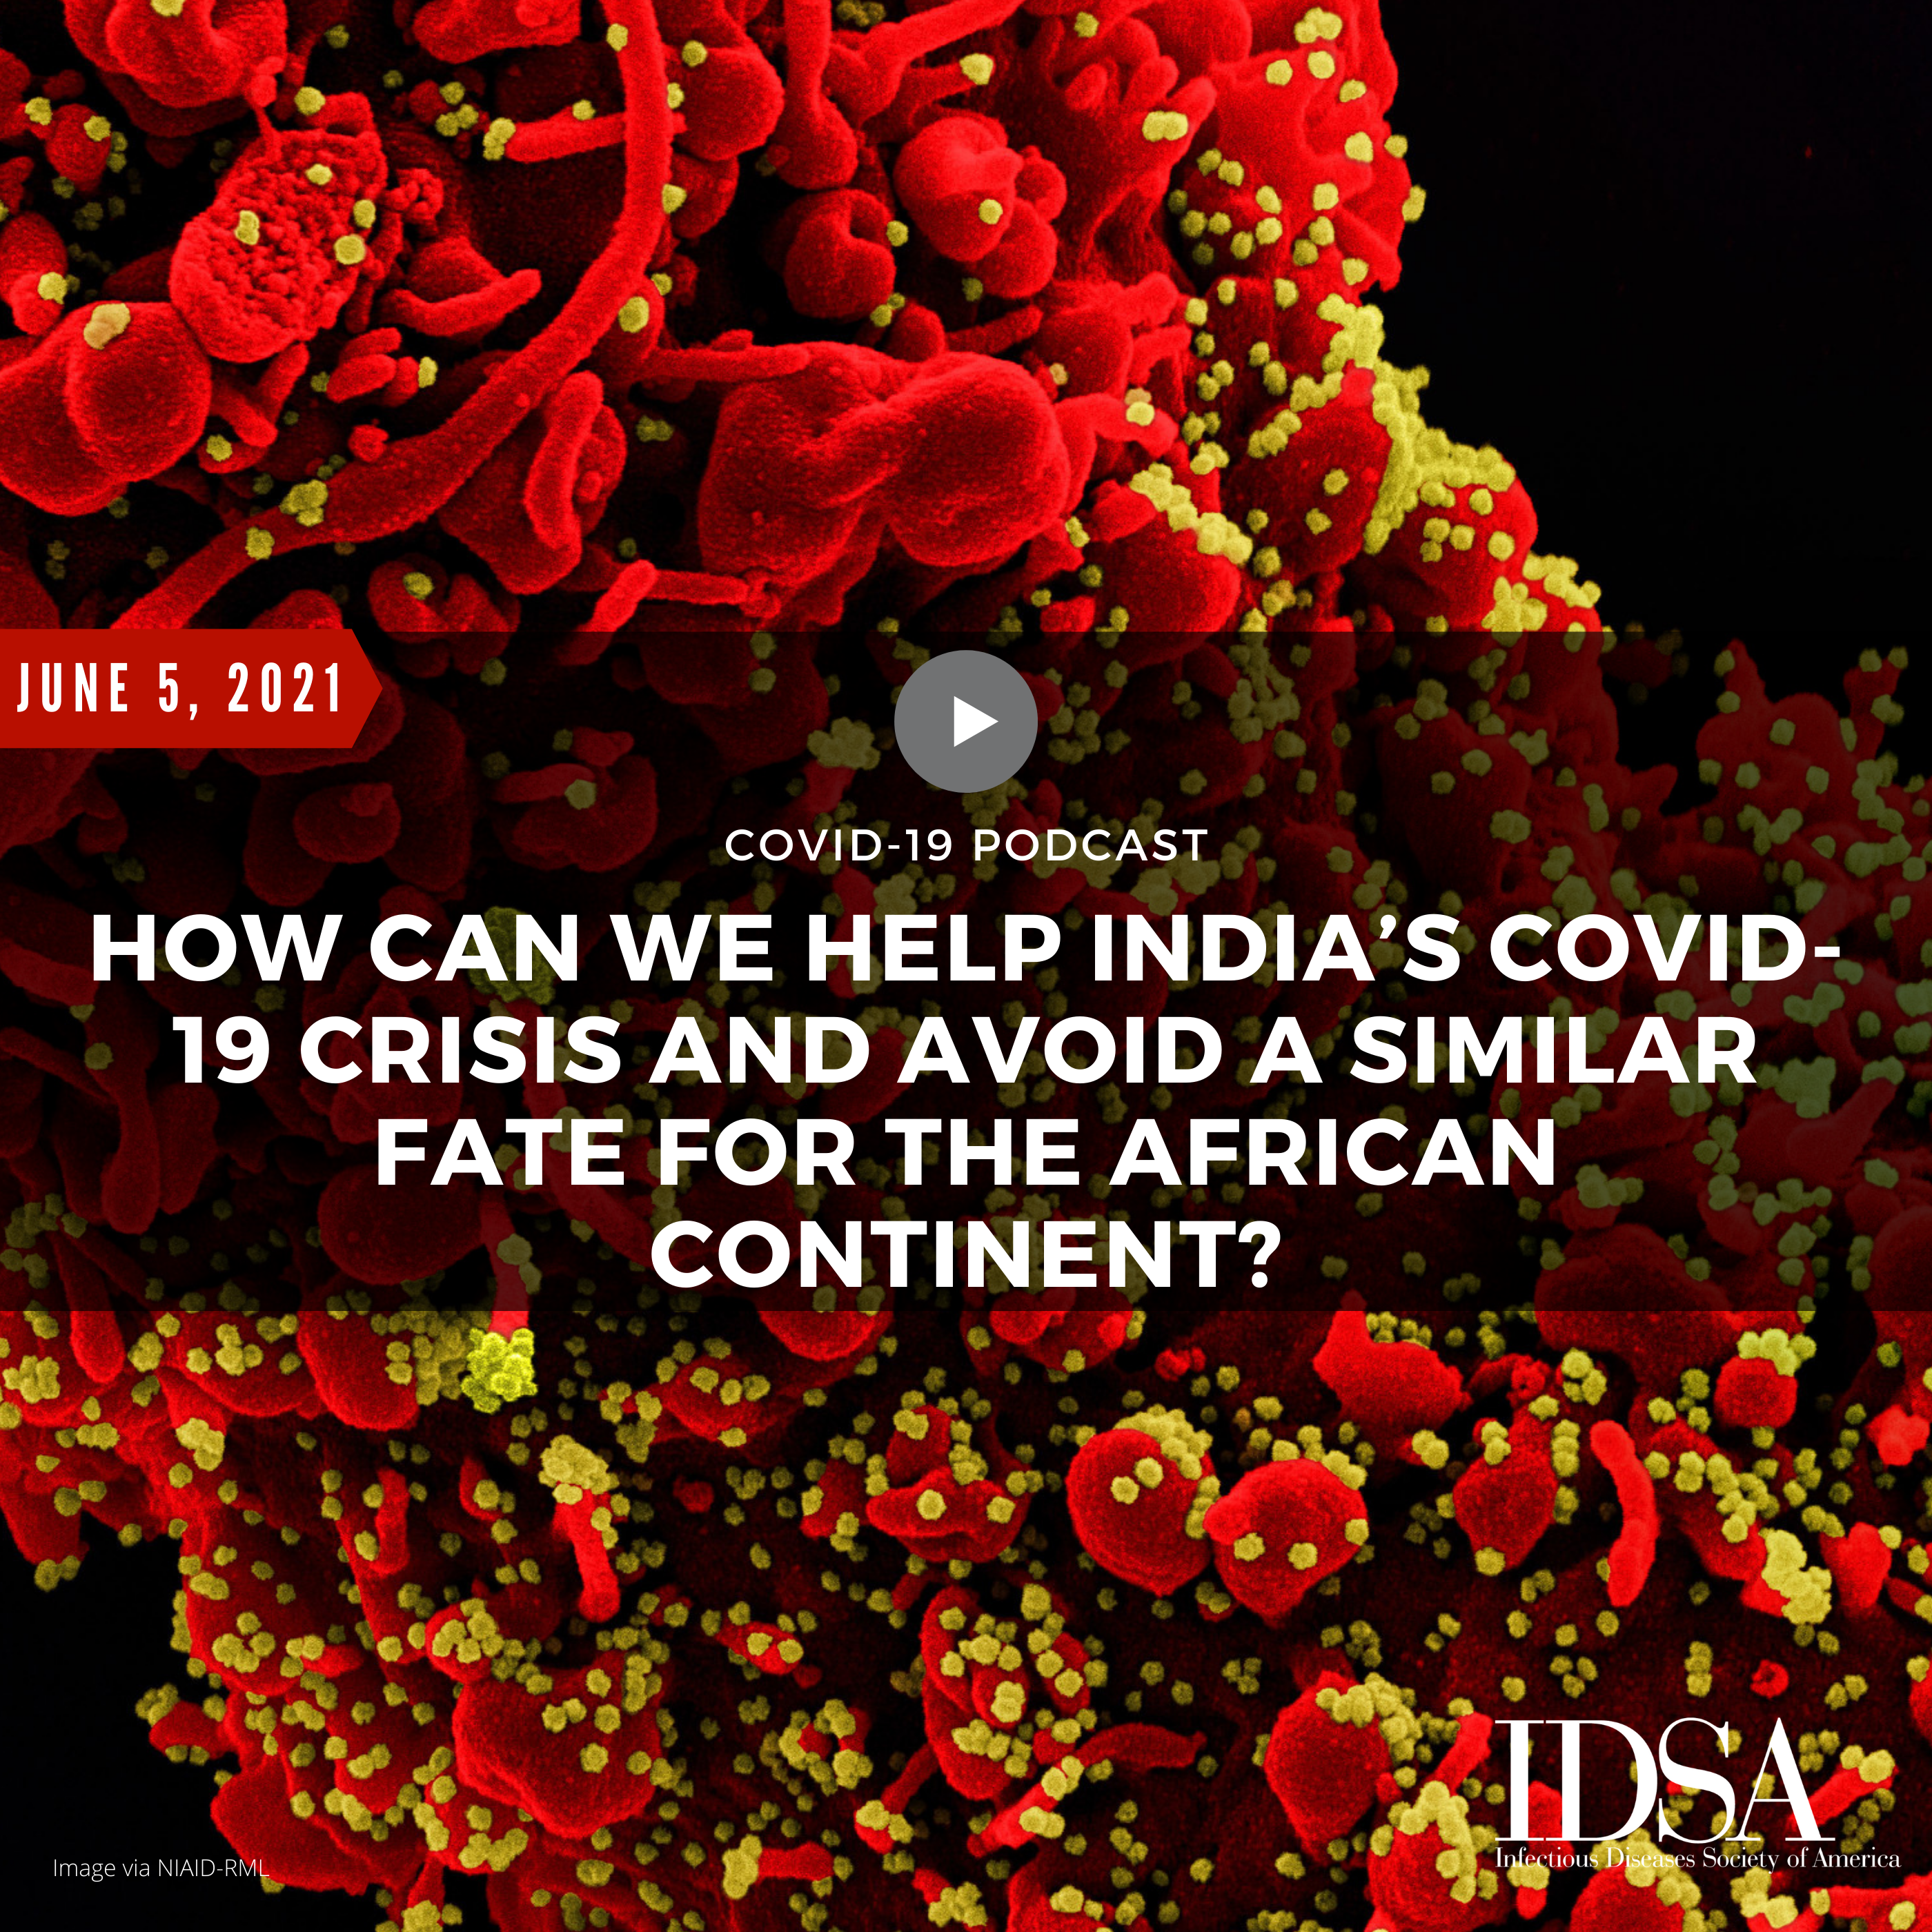 How Can We Help India's COVID-19 Crisis and Avoid a Similar Fate for the African Continent? (June 5, 2021)